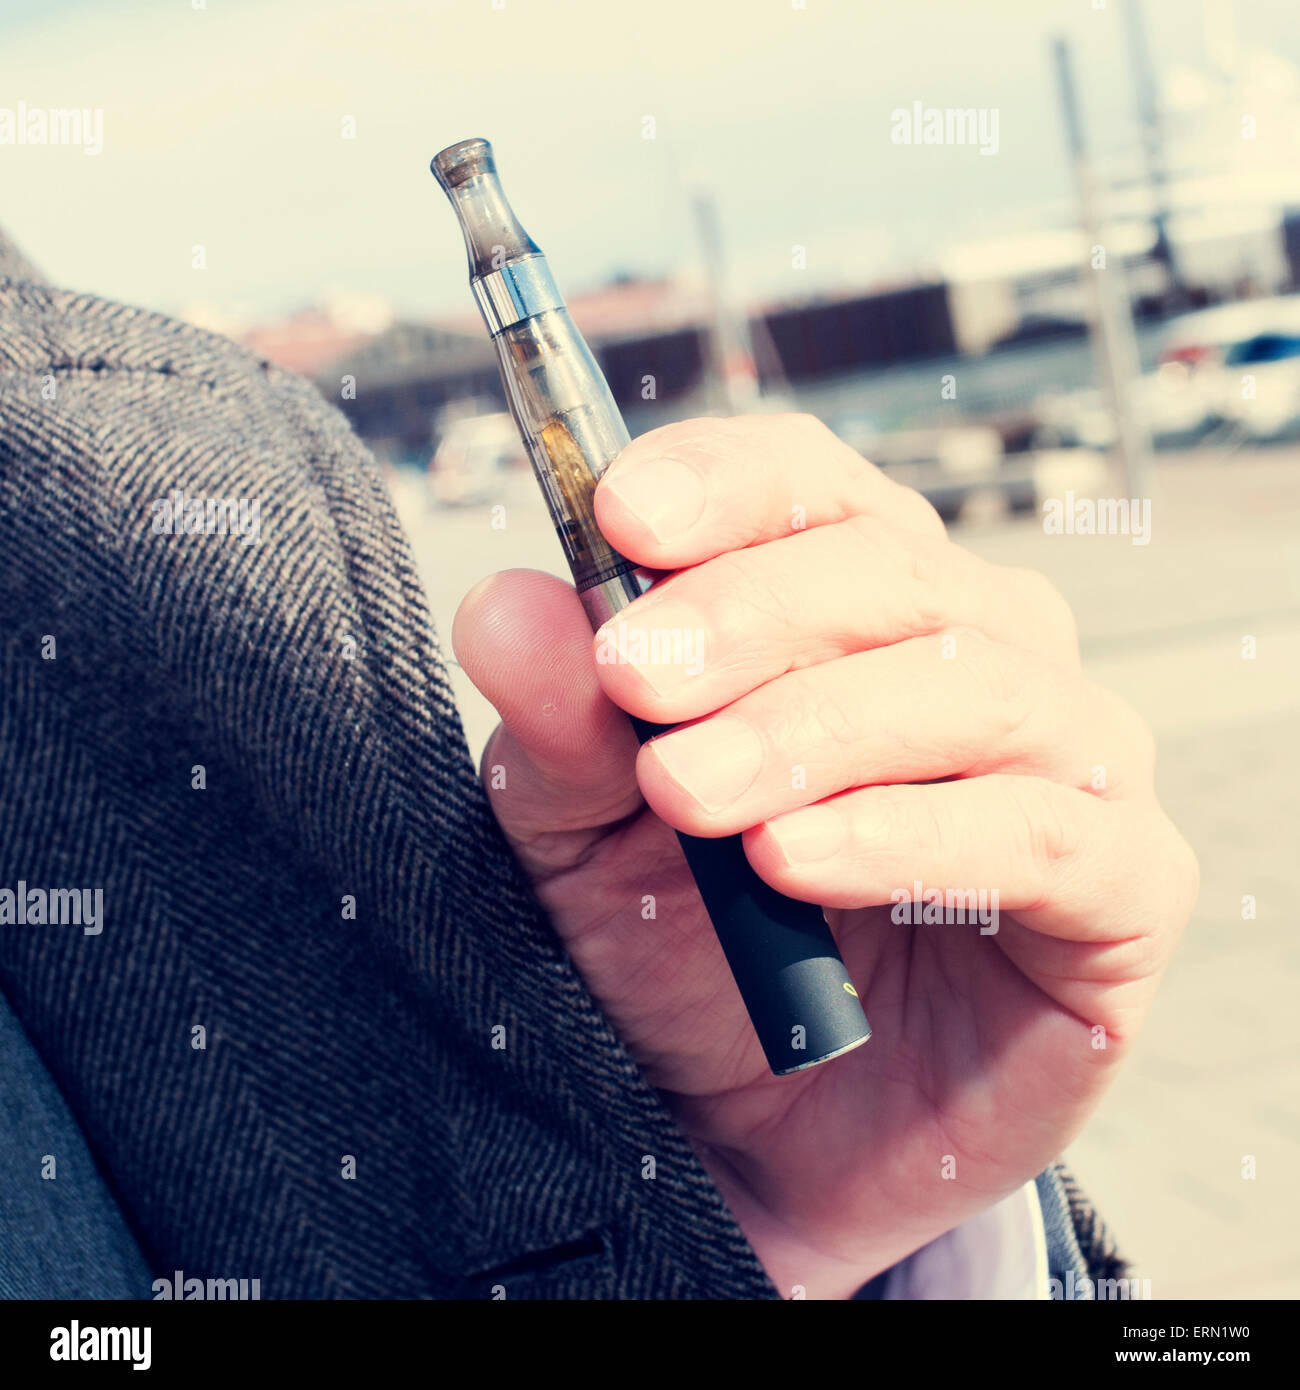 closeup of the hand of a young caucasian man vaping with an electronic cigarette outdoors - Stock Image